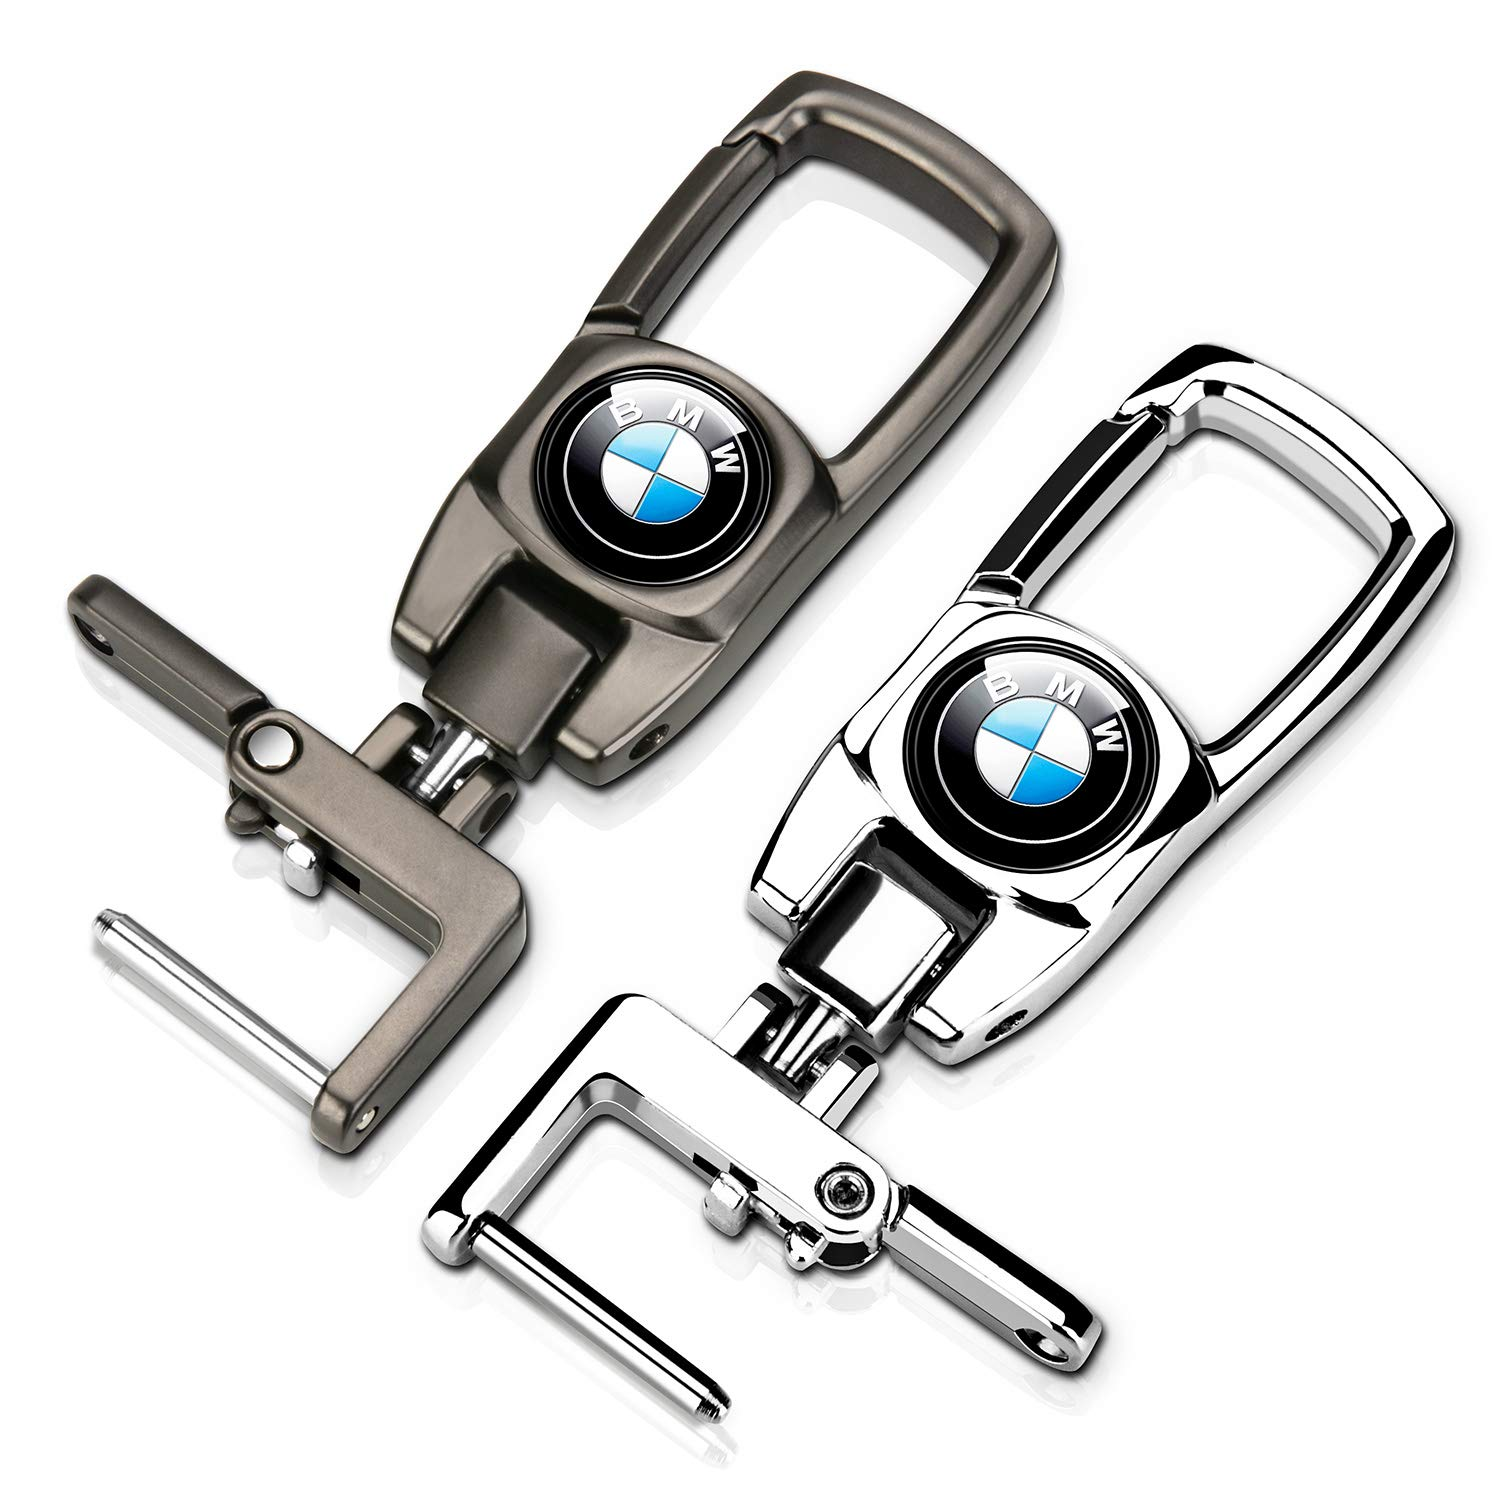 Goshion 2Pack Car Logo Keychain Suit for BMW 1 3 5 6 Series X5 X6 Z4 X1 X3 X7 7 Series M Key Chain Keyring Family Present for Man and Woman